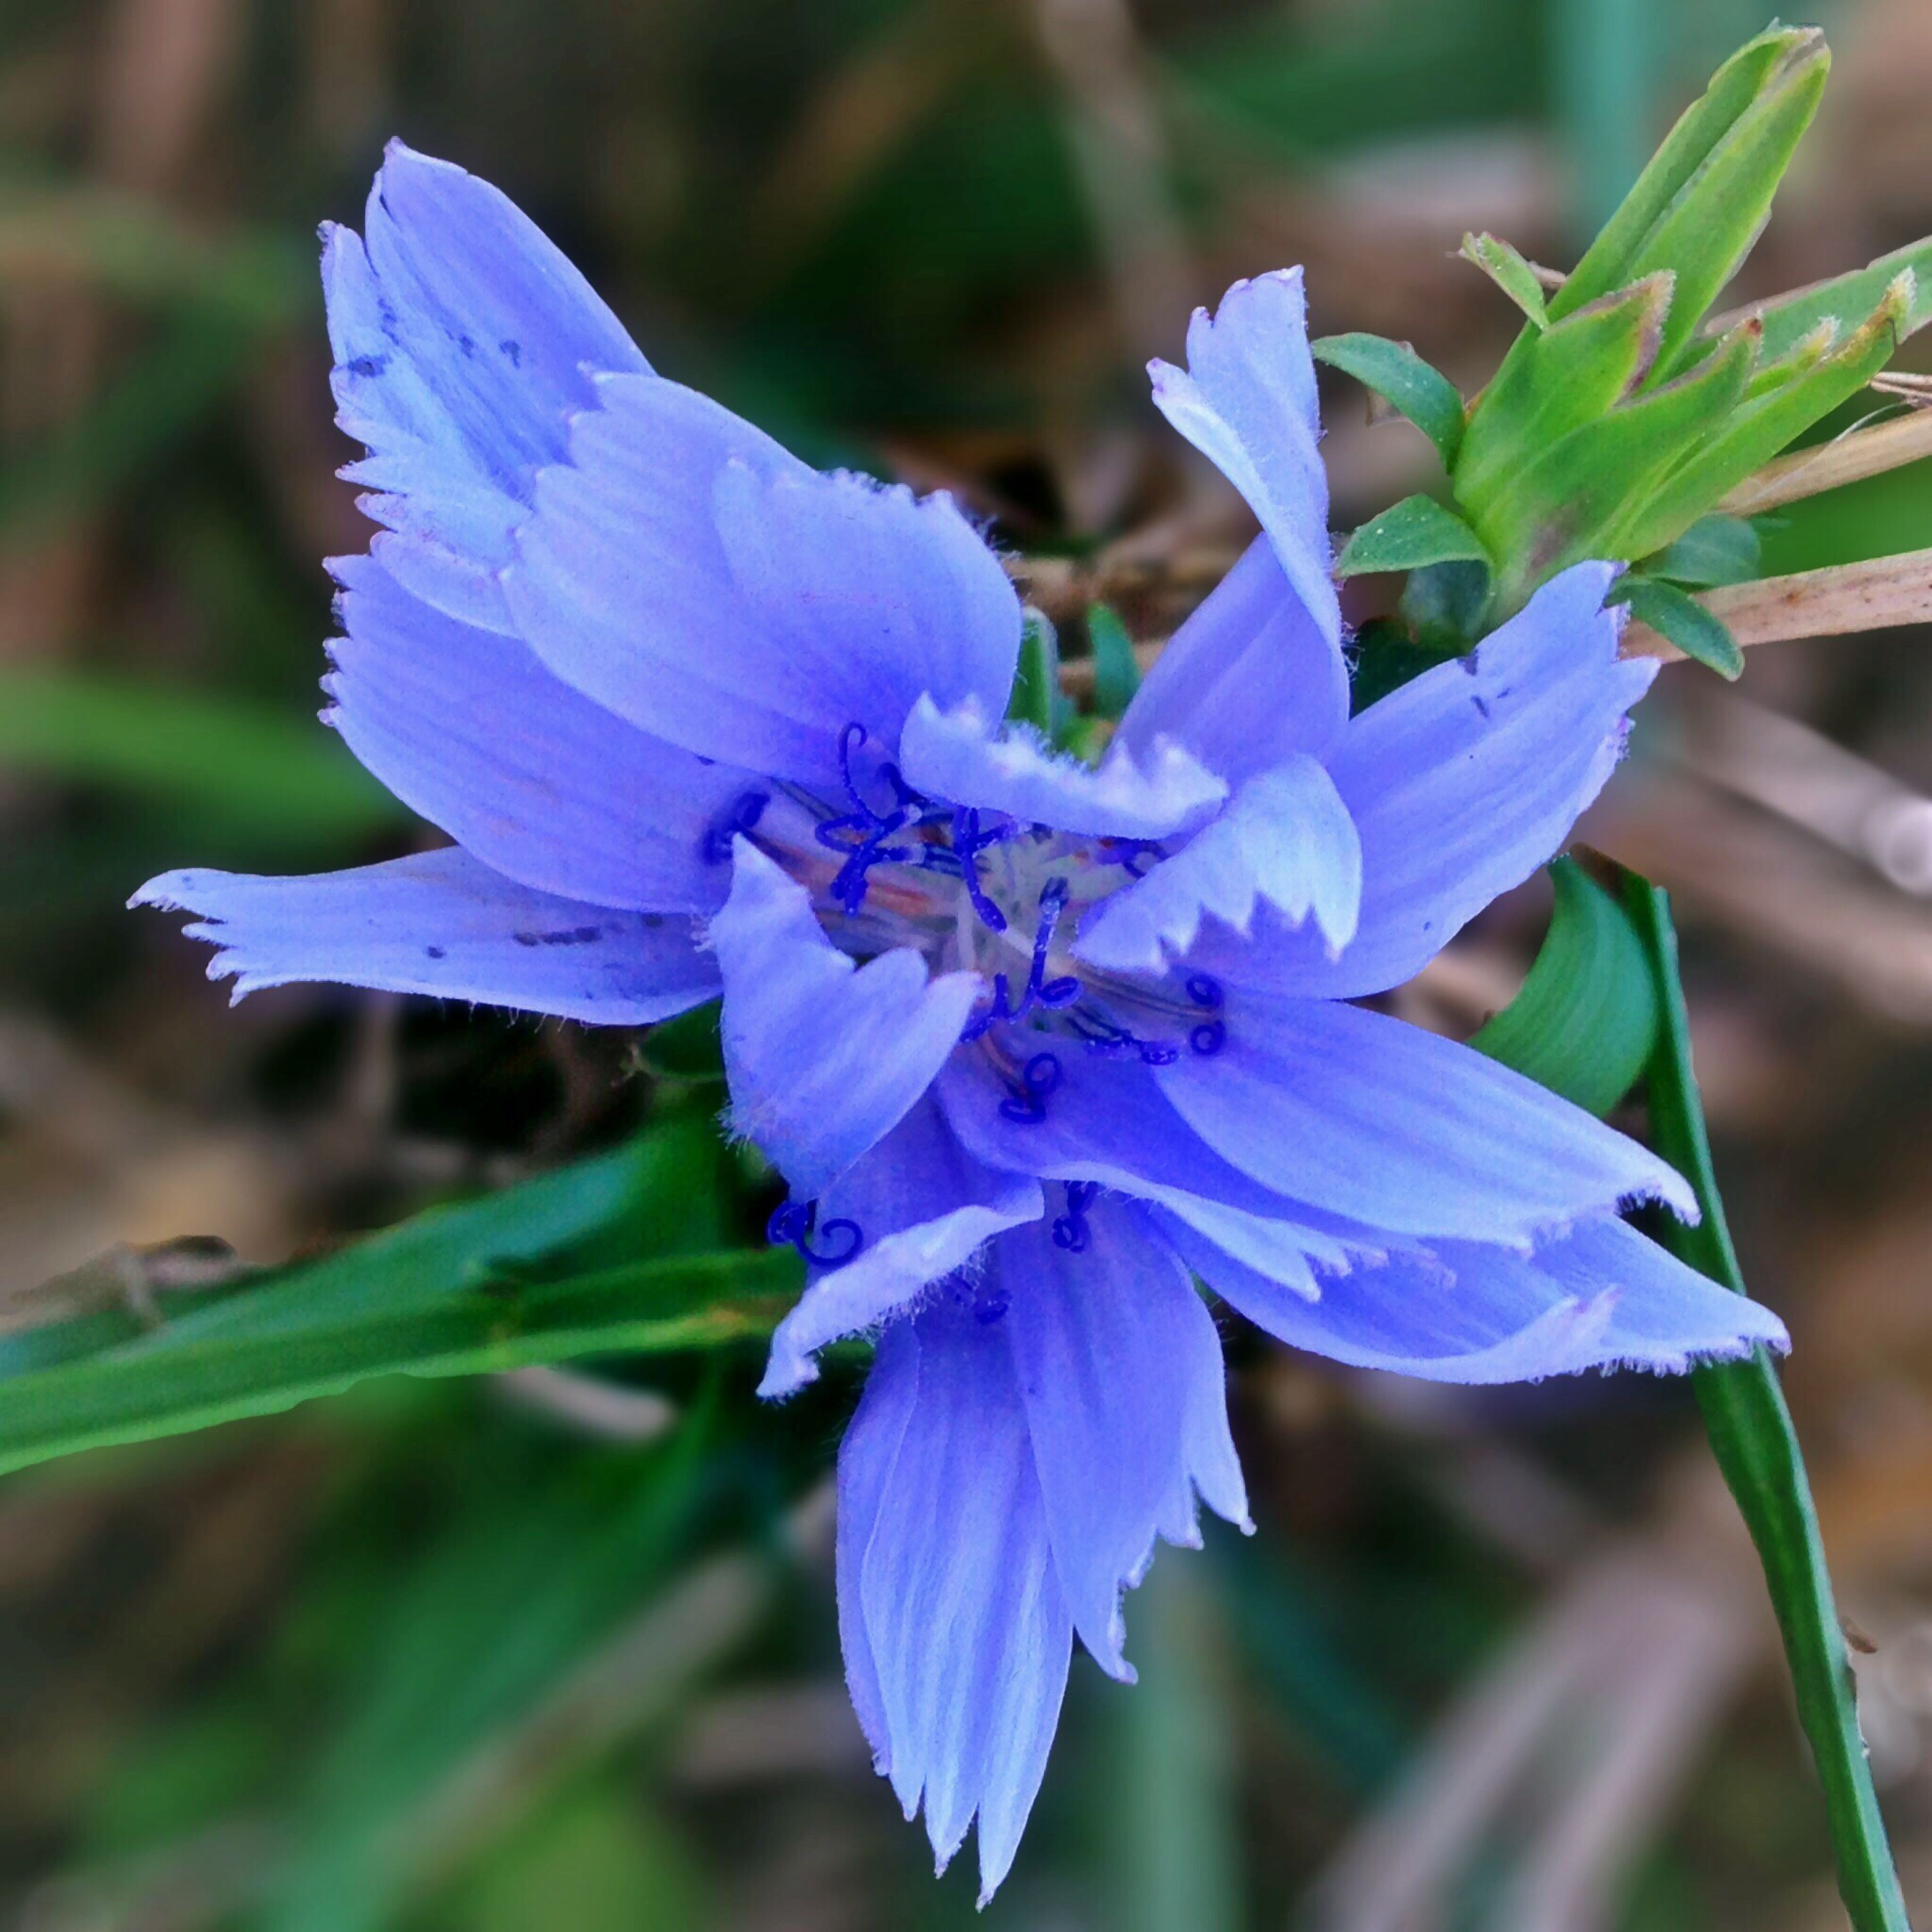 flower, purple, freshness, petal, fragility, flower head, close-up, growth, focus on foreground, blue, beauty in nature, blooming, nature, single flower, plant, in bloom, pollen, stamen, blossom, day